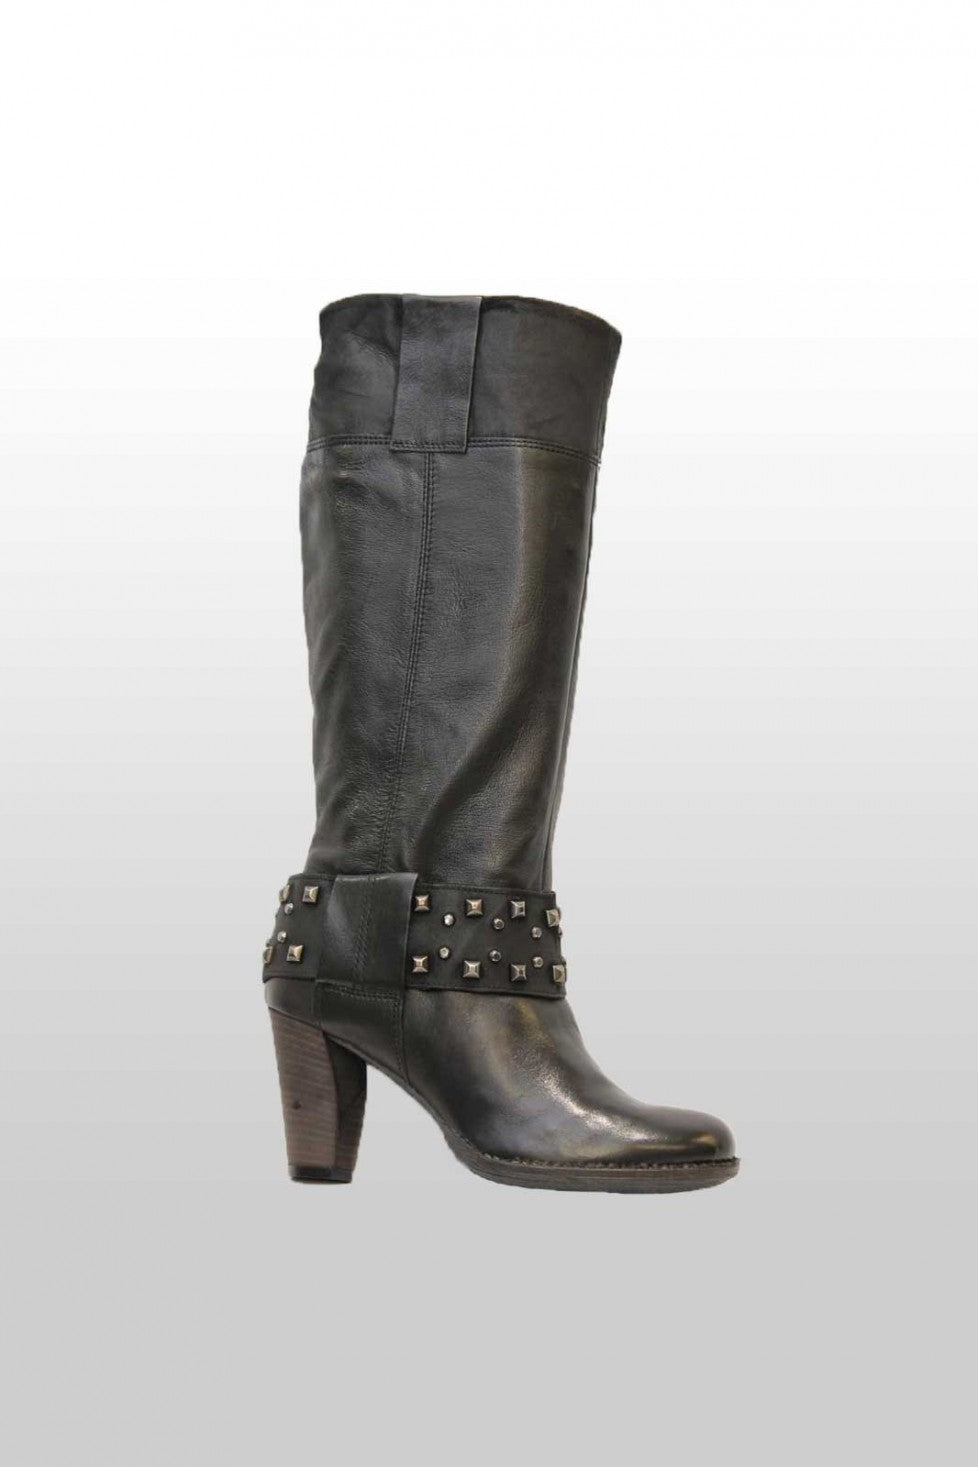 Black-Studded-Martinas-Boots-with-Heel-style-and-grace